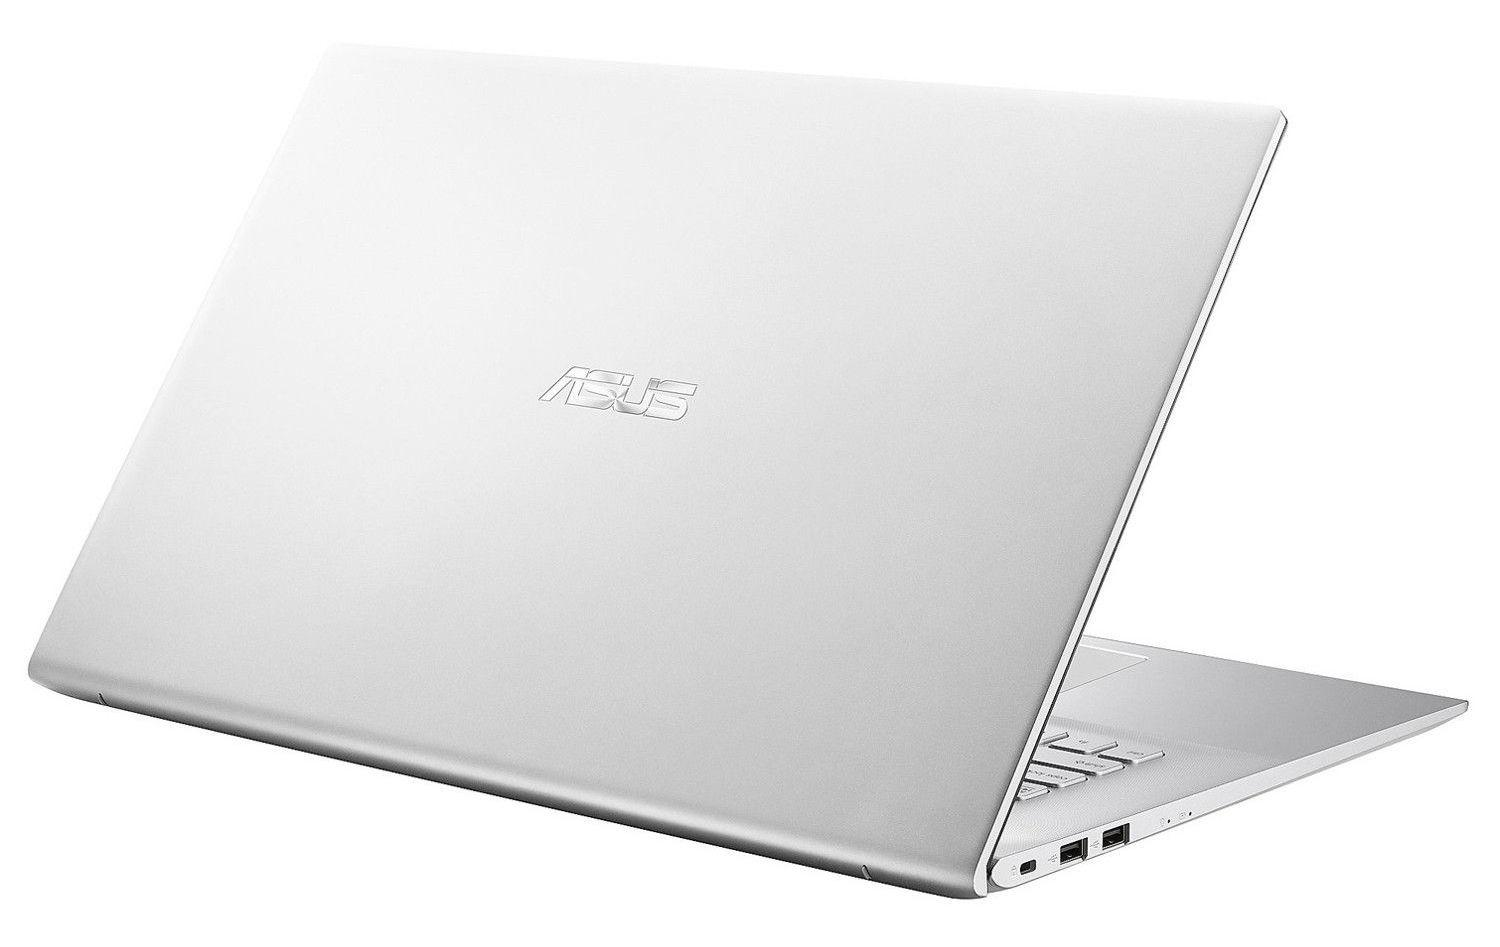 Ordinateur portable Asus VivoBook X712FB-AU168T Argent - SSD 512 Go, MX110 - photo 5